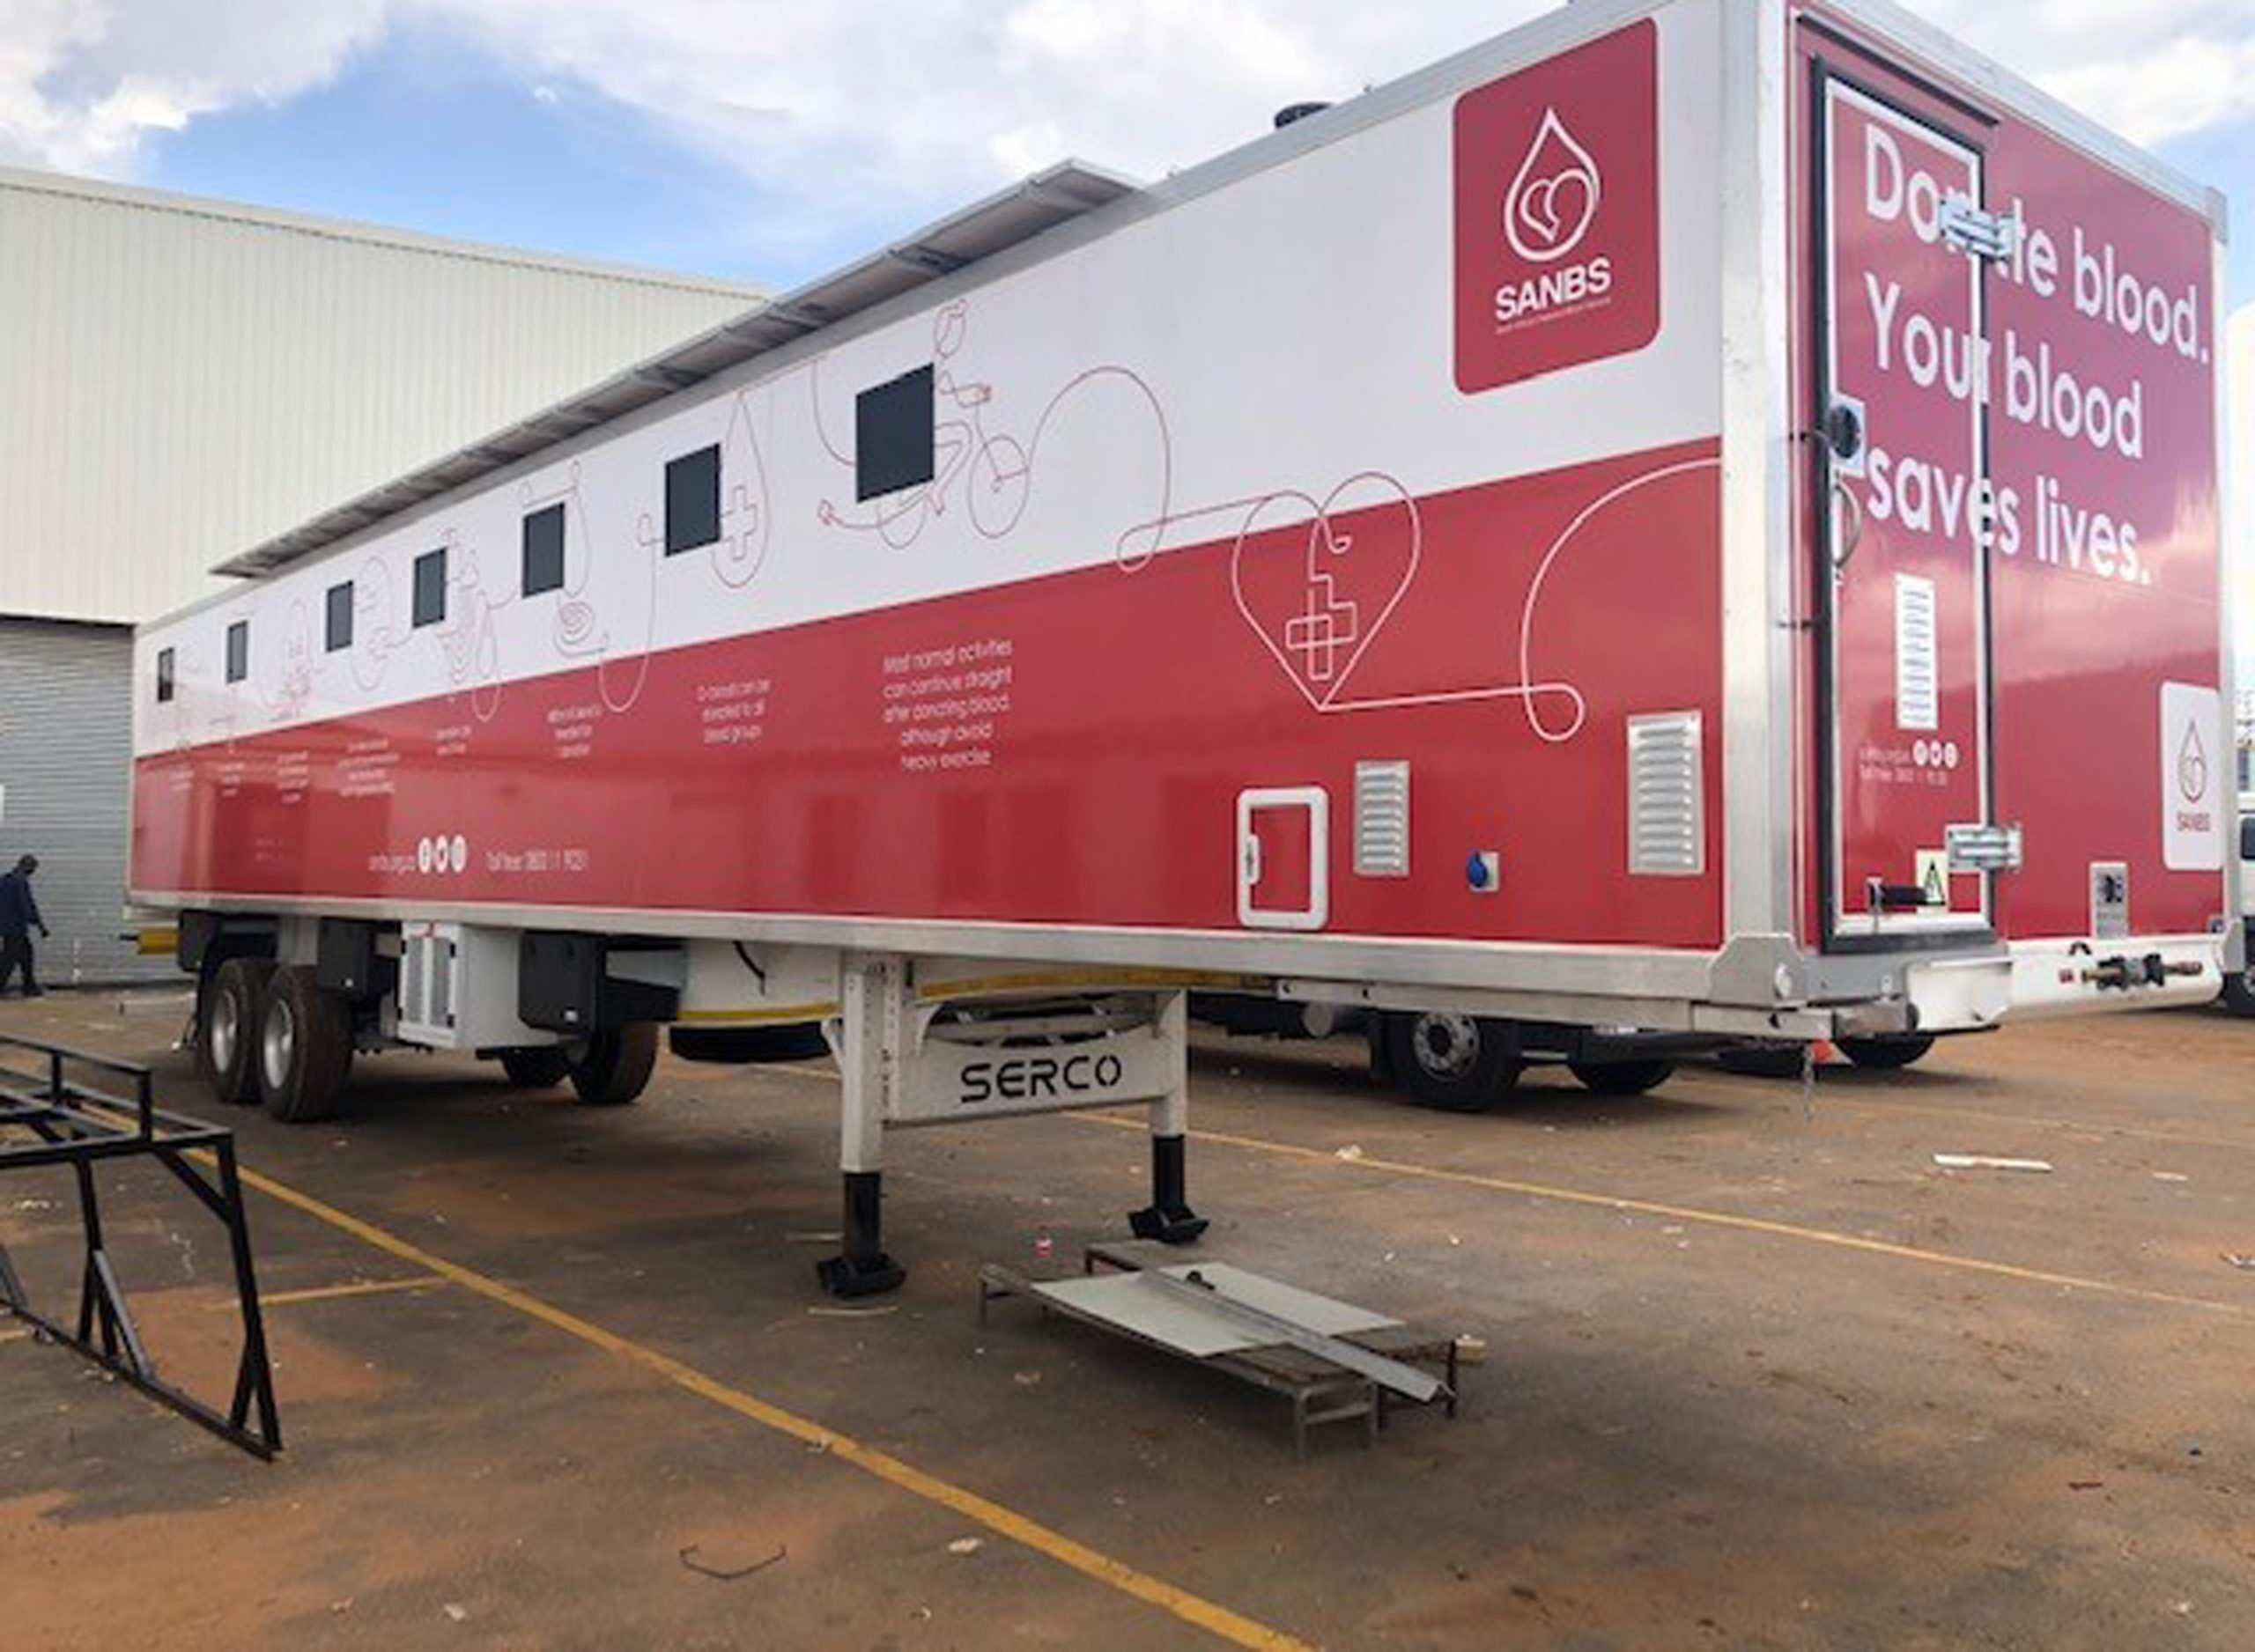 Serco Trailer used to Save Lives as Mobile Blood bank with EVC